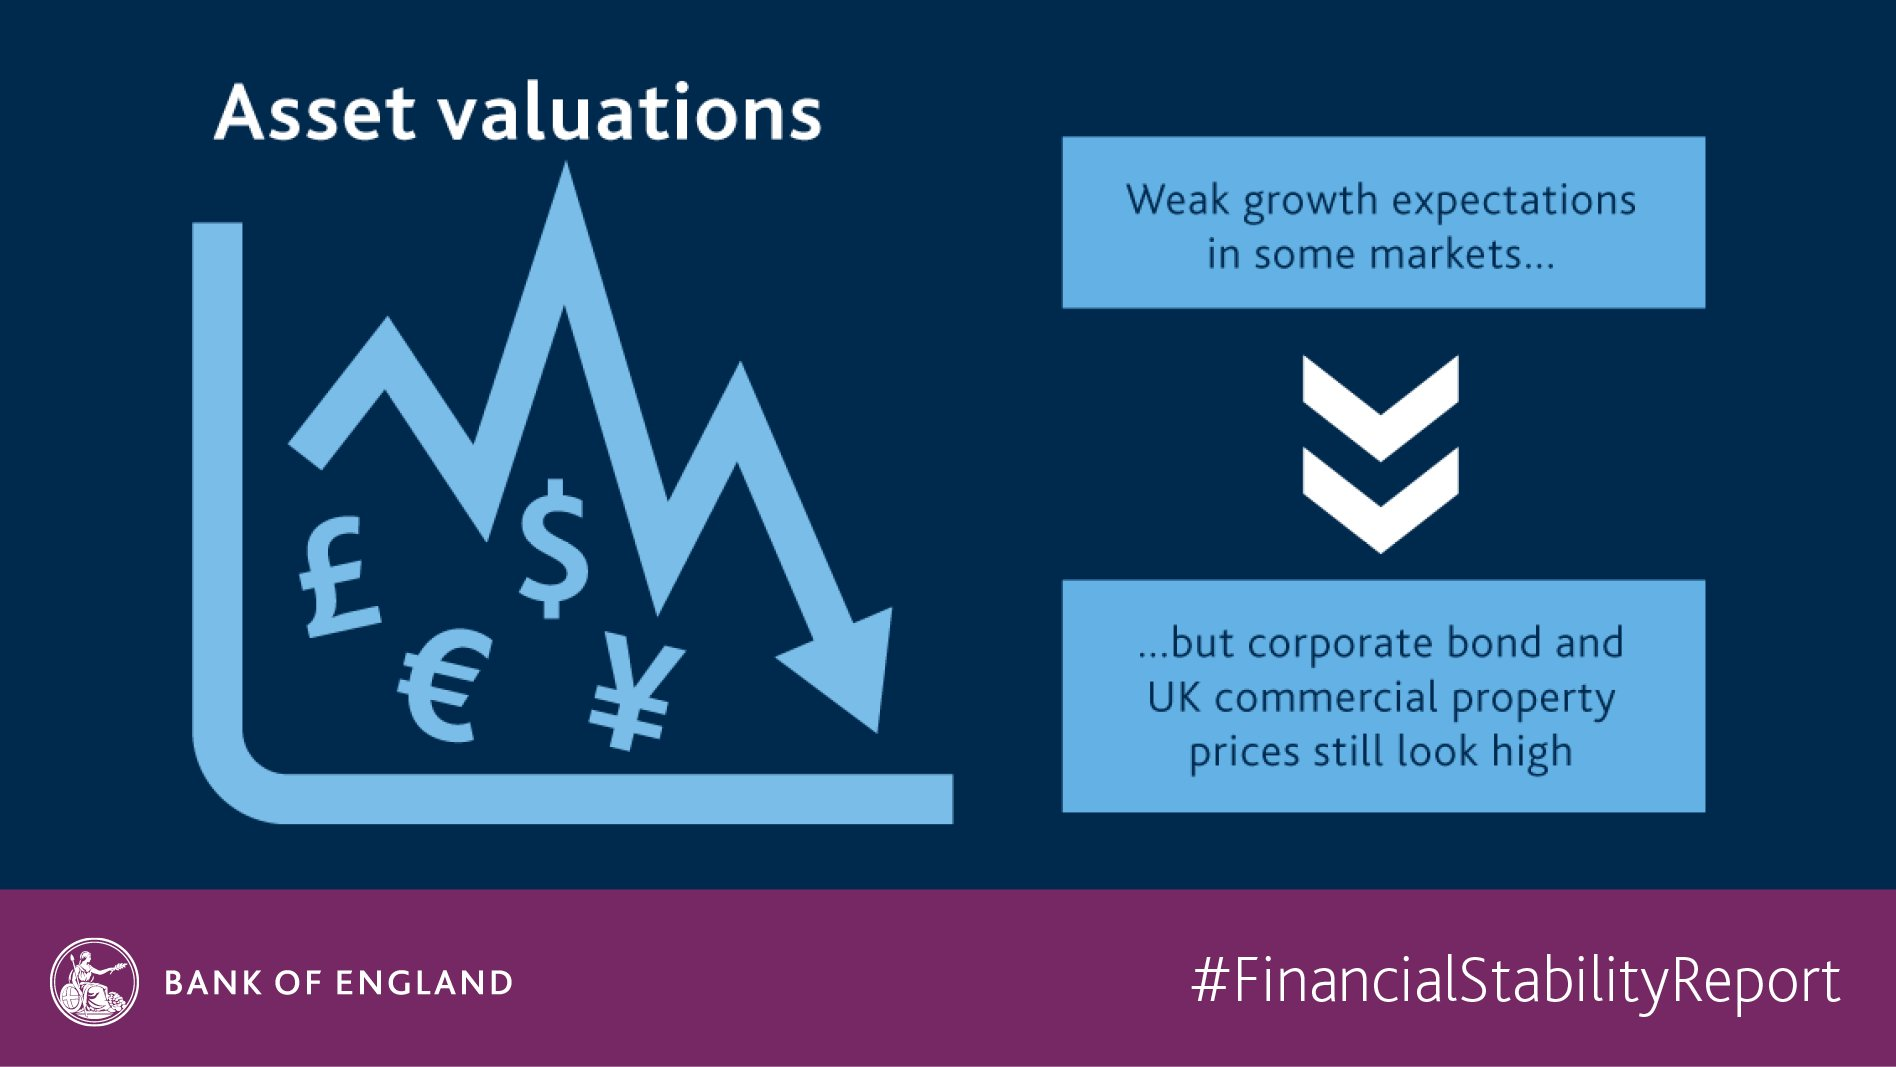 What's our latest assessment of asset valuations? https://t.co/eY8wGI3Lc6 #FinancialStabilityReport https://t.co/FwF9o0gKDE